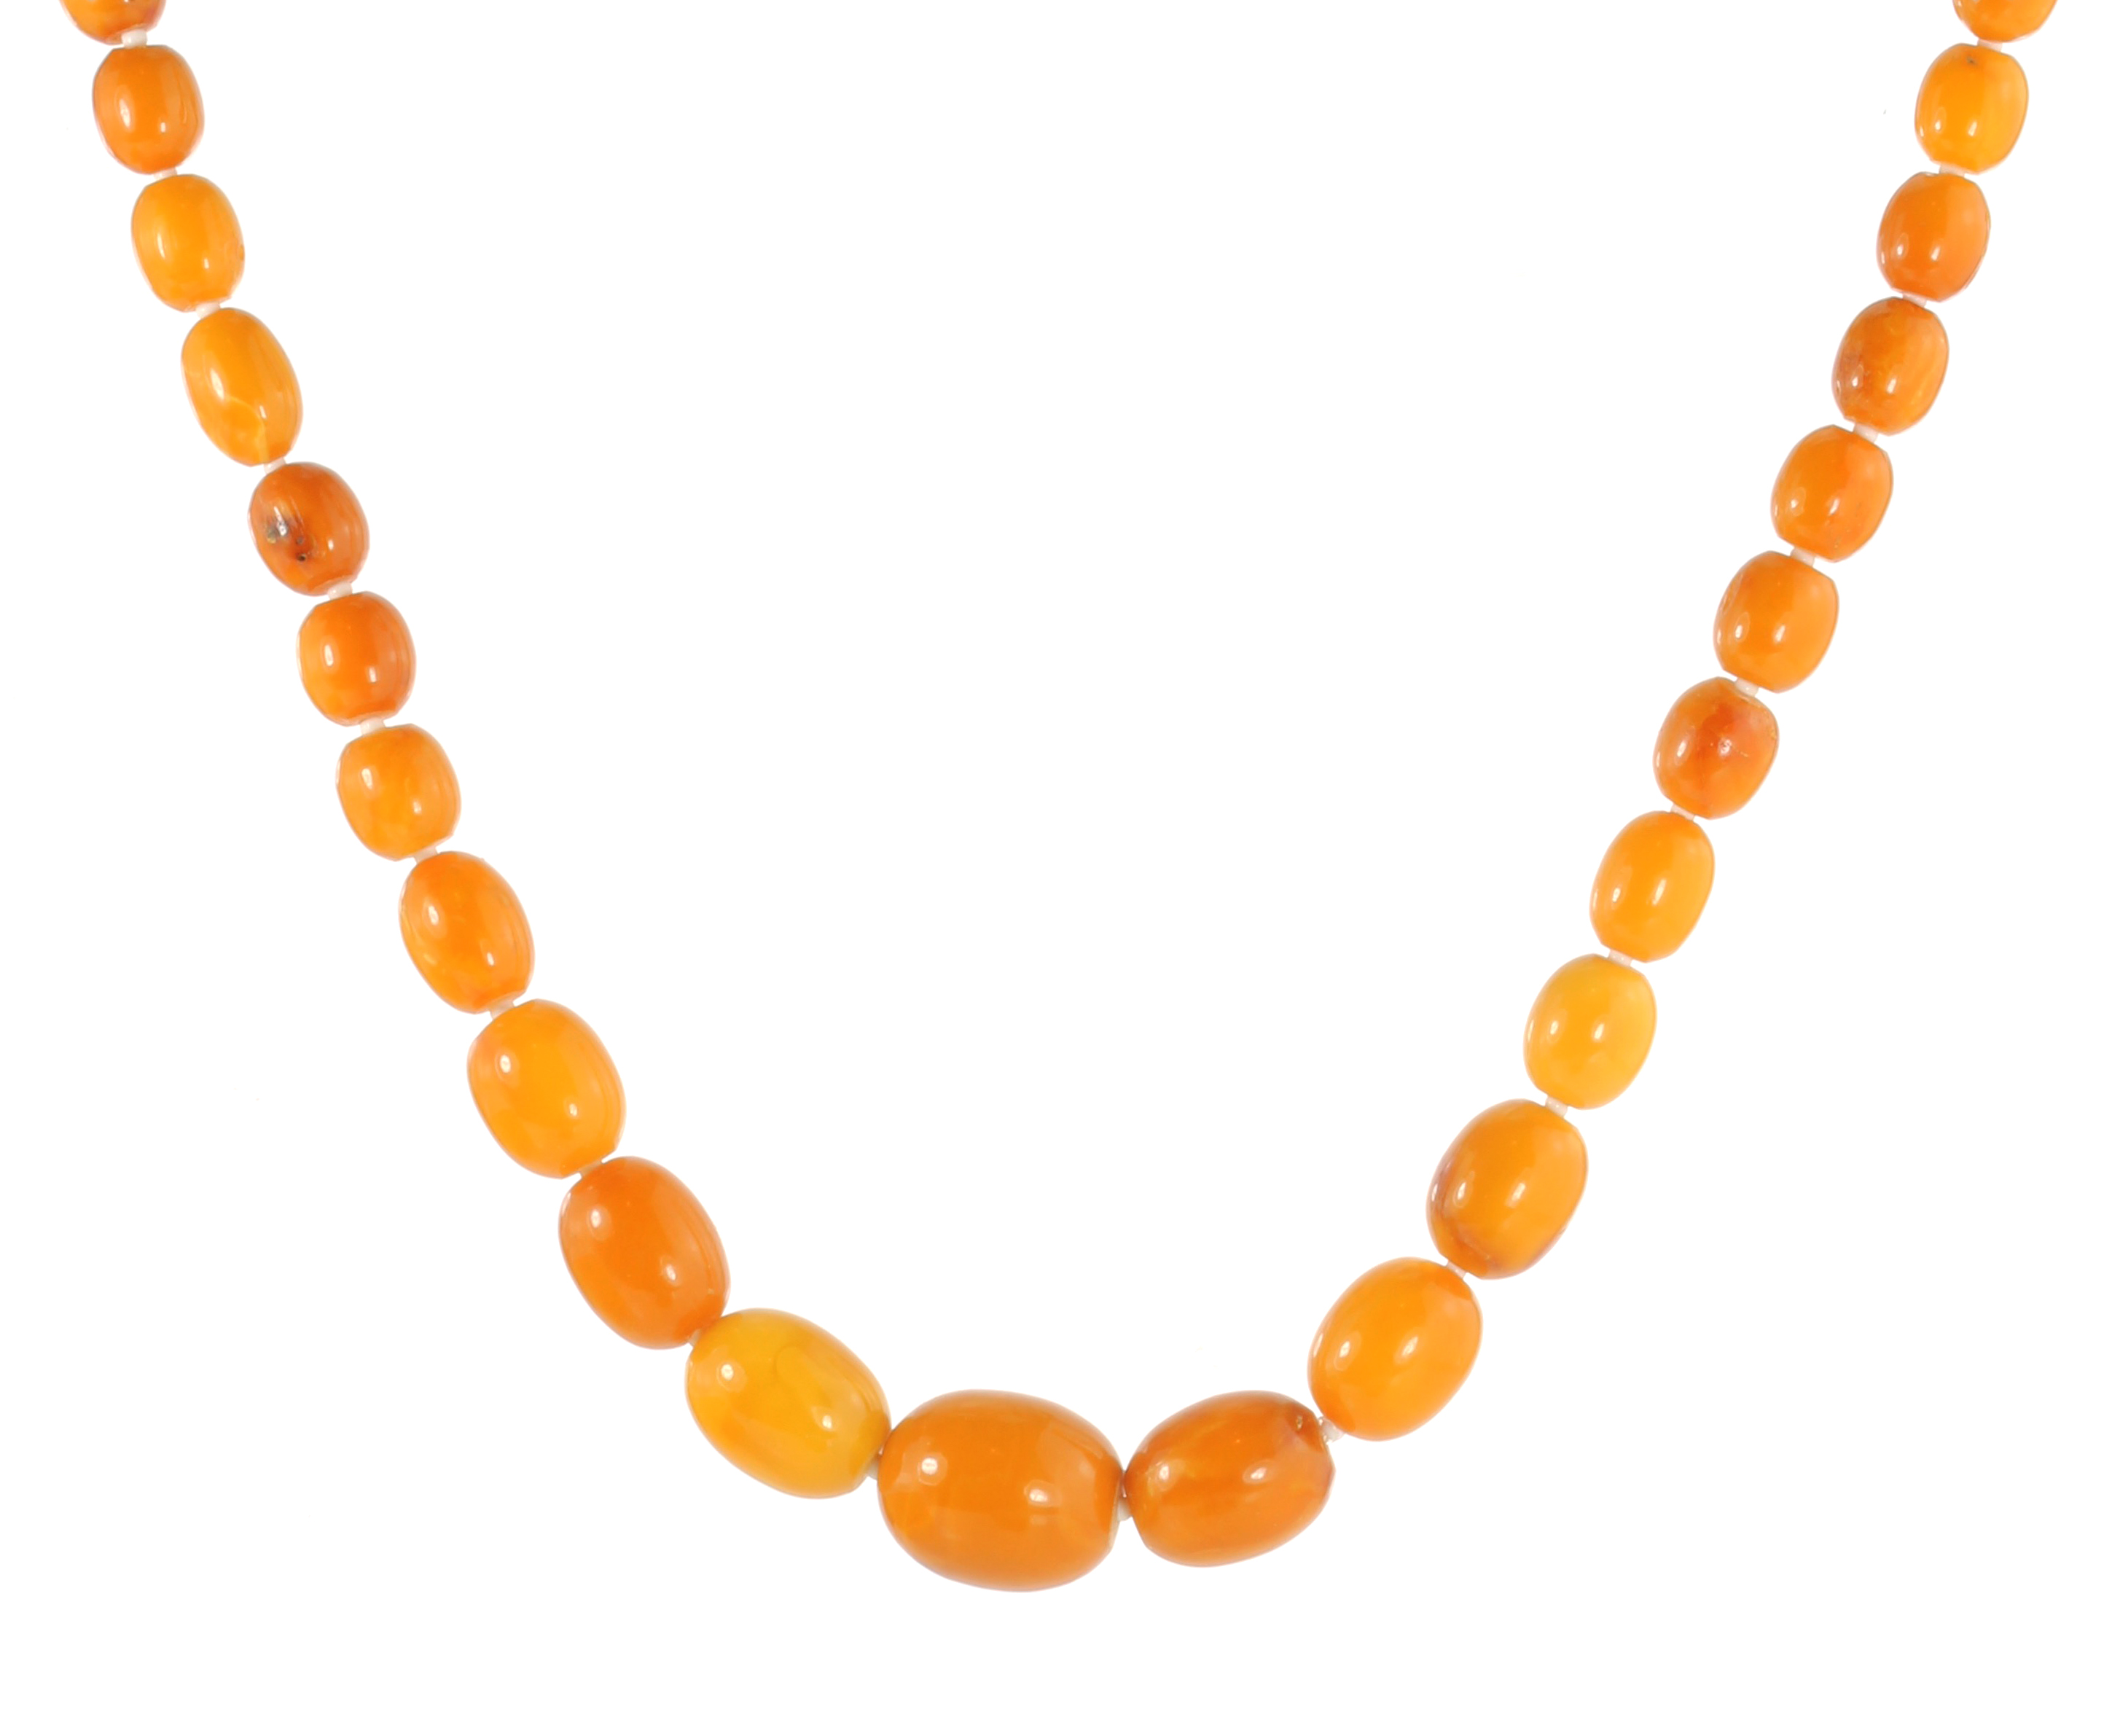 Los 7 - AN NATURAL AMBER BEAD NECKLACE comprising a single row of sixty-eight graduated polished oval